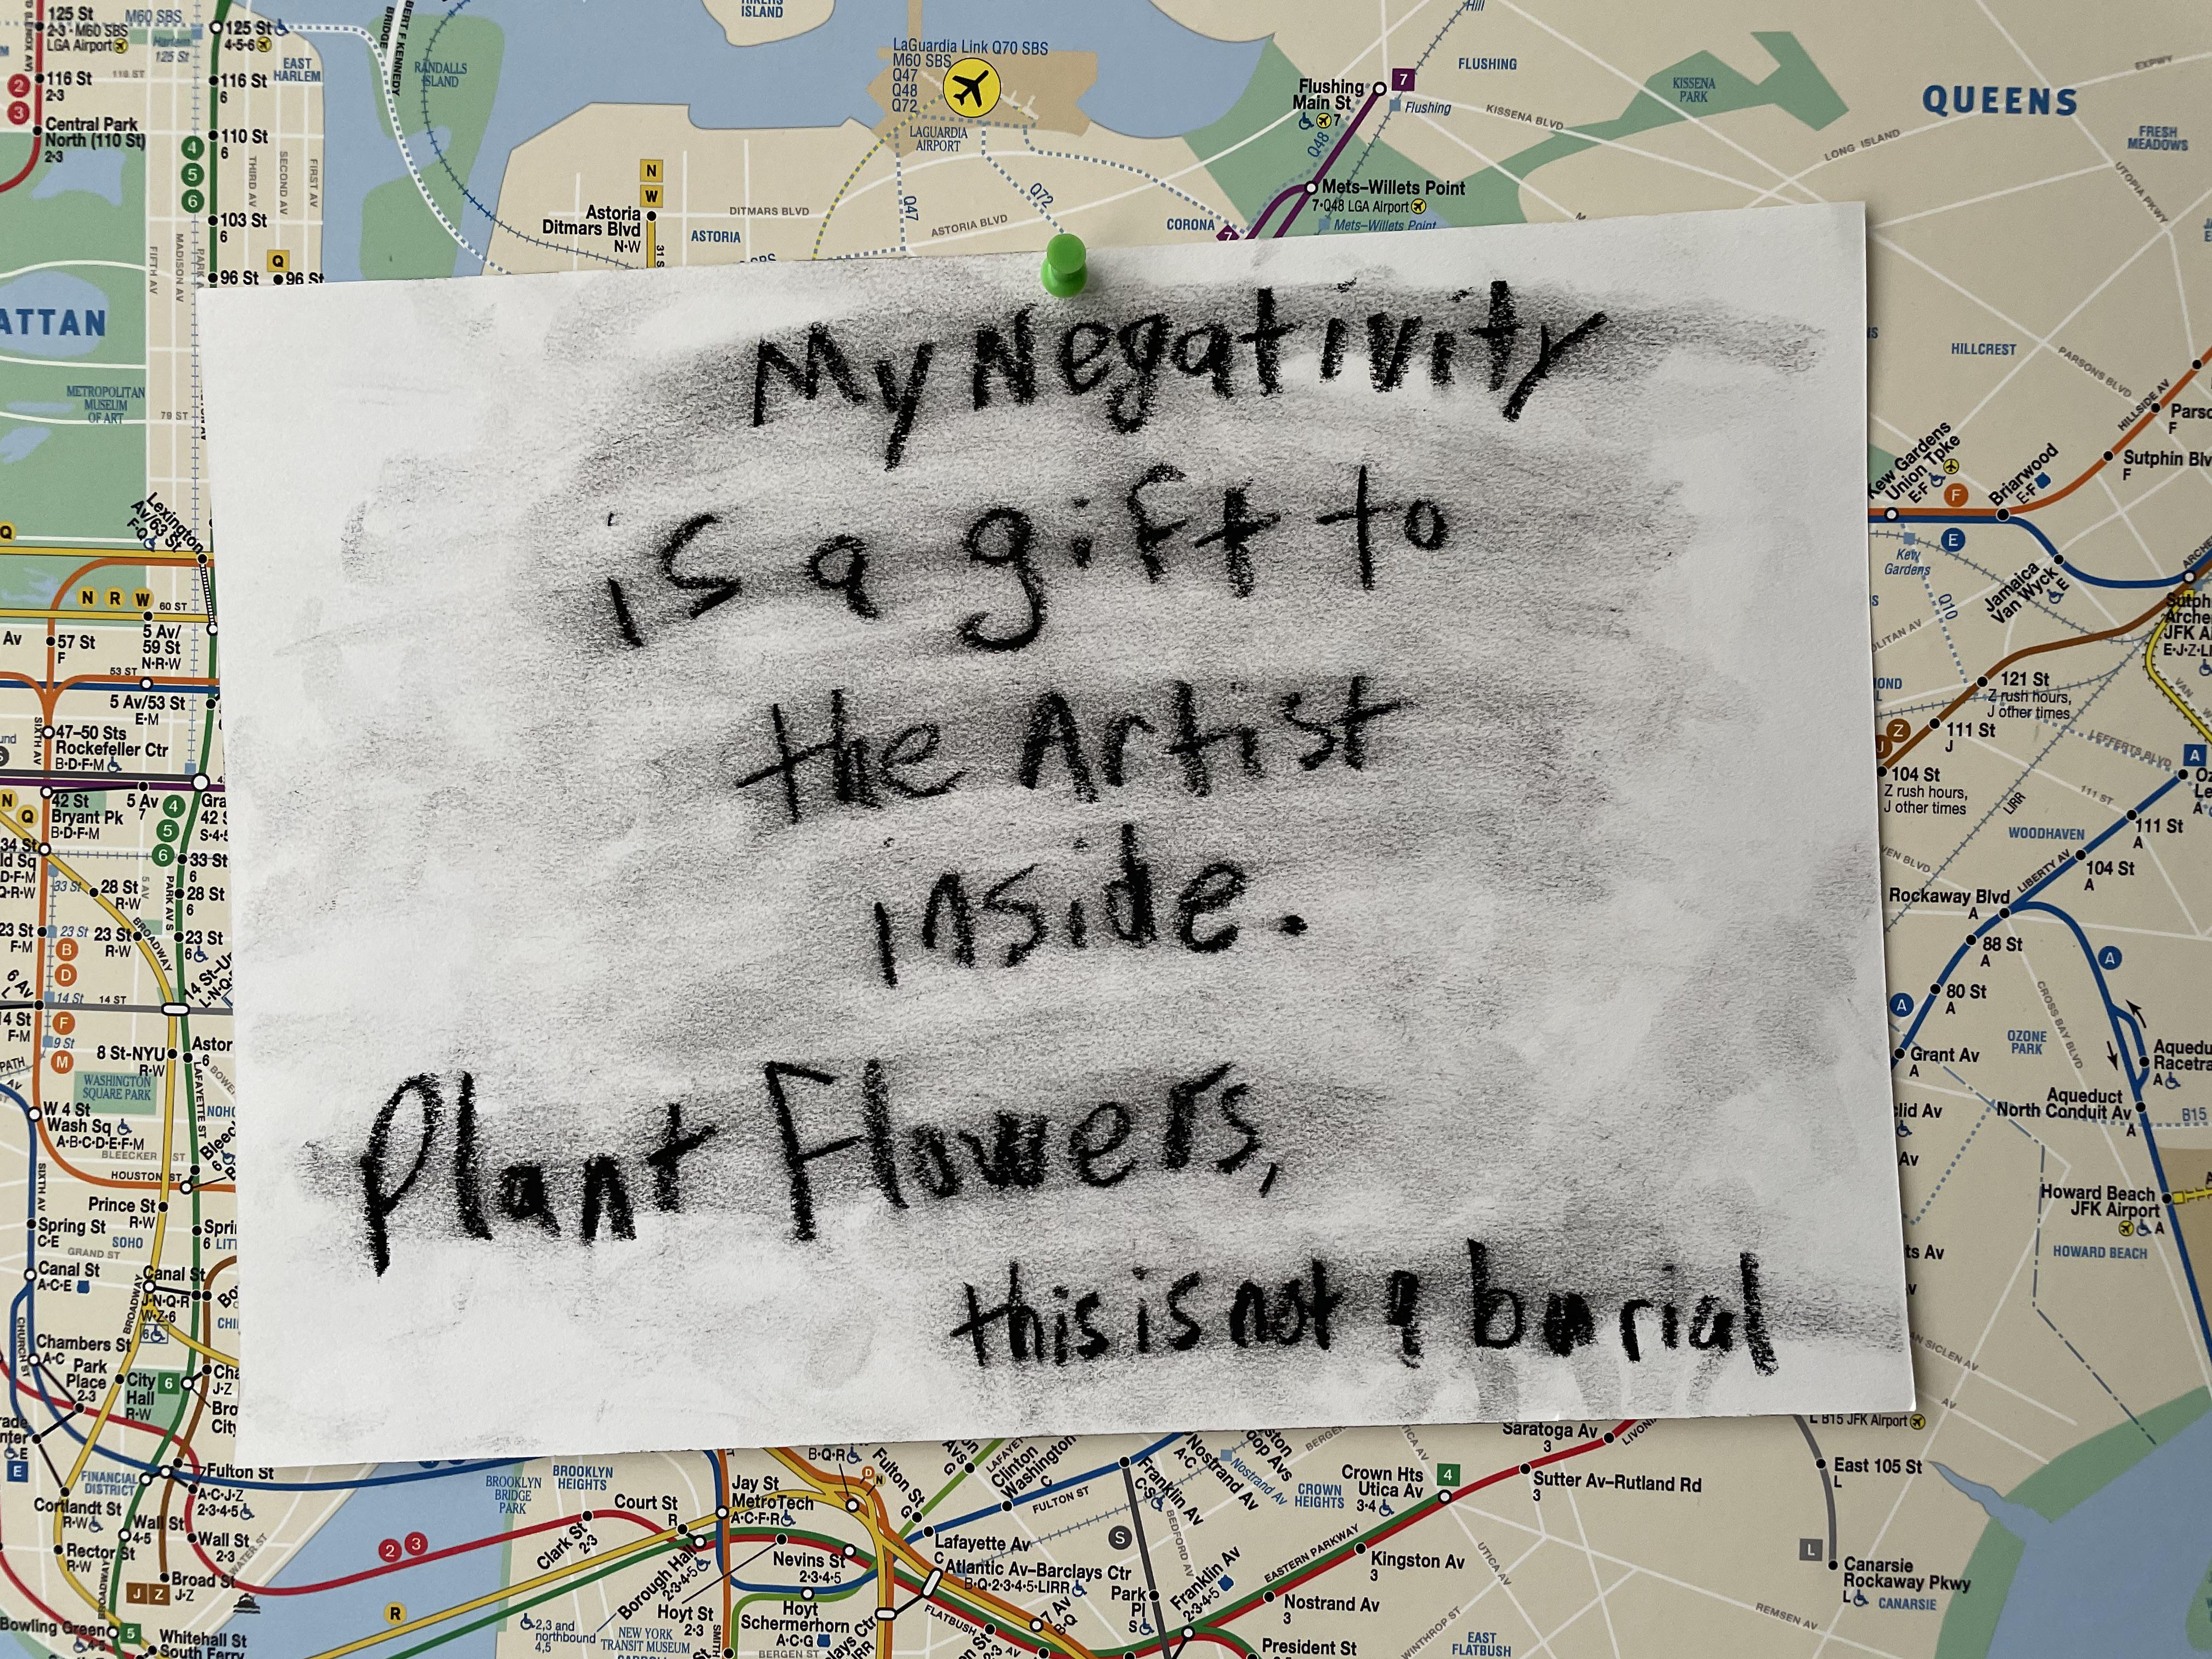 [Image] Plant Flowers, This Is Not a Burial.